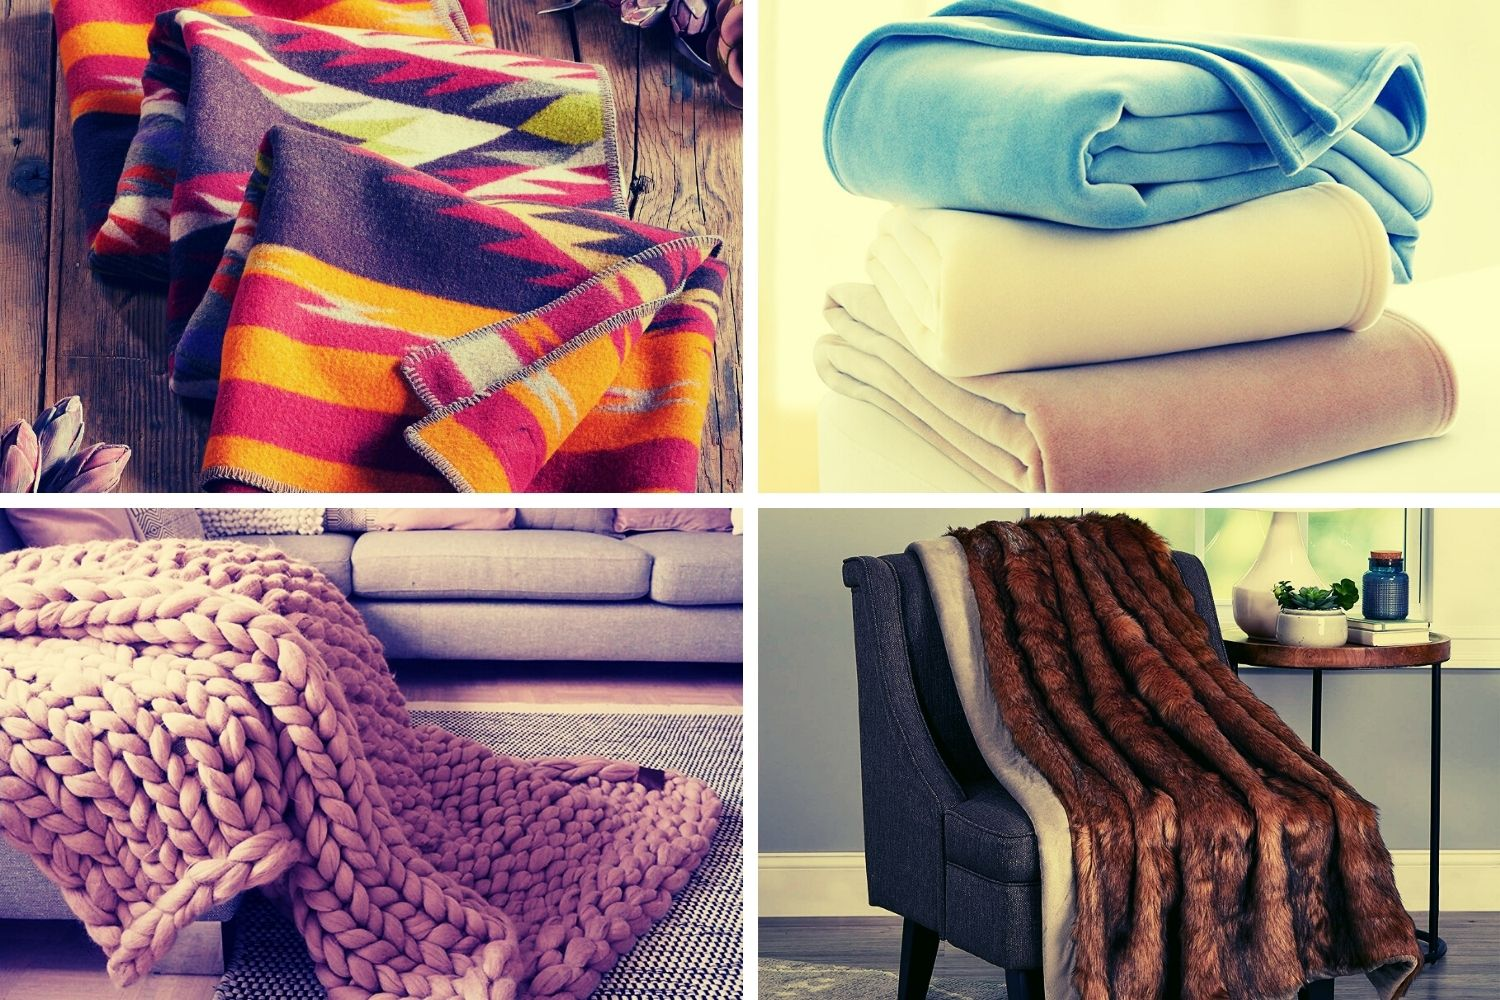 40+ Different Types Of Blankets to Improve Your Bedroom